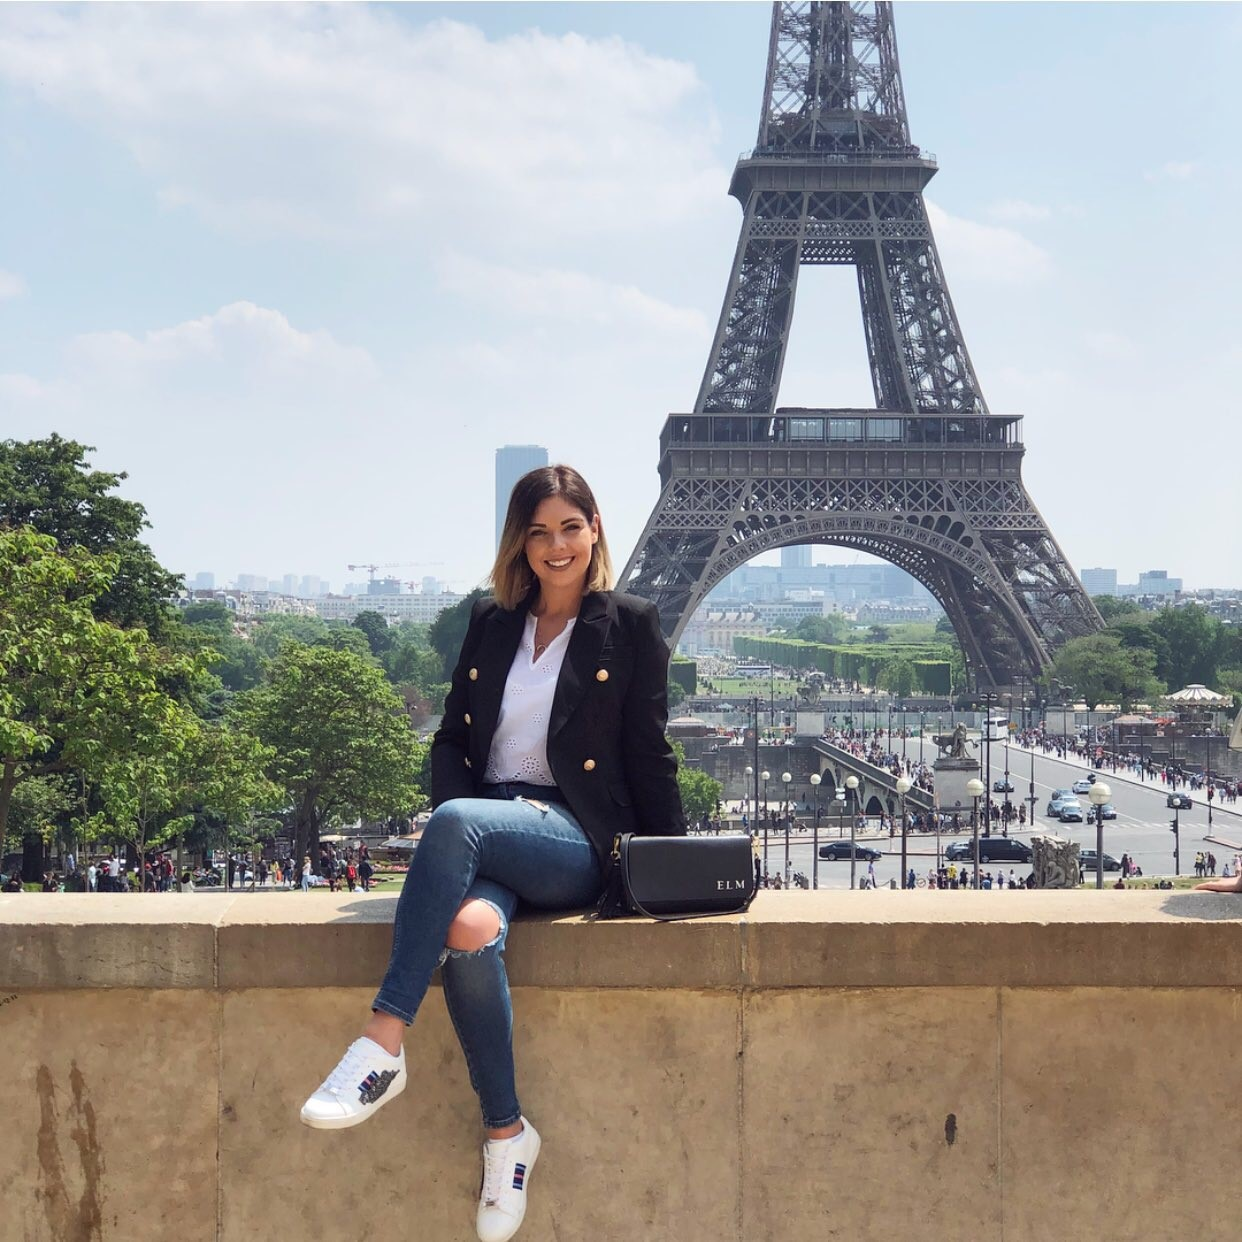 A WEEKEND IN PARIS FRANCE - EMMA MUMFORD